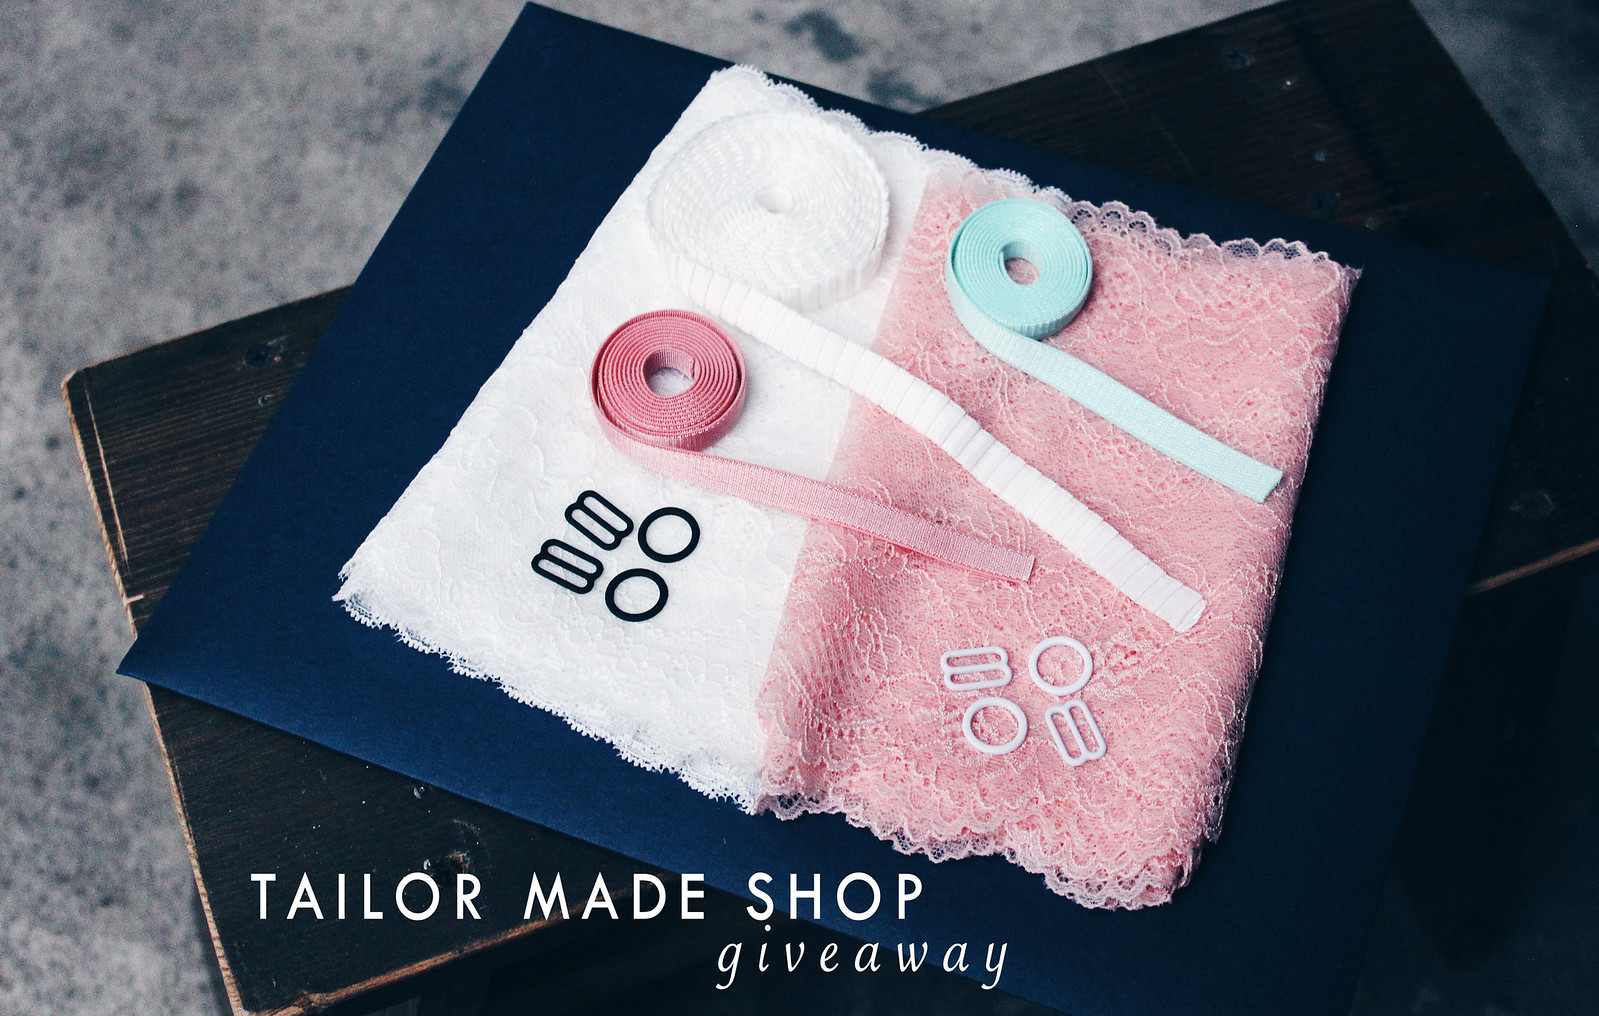 tailor made shop giveaway